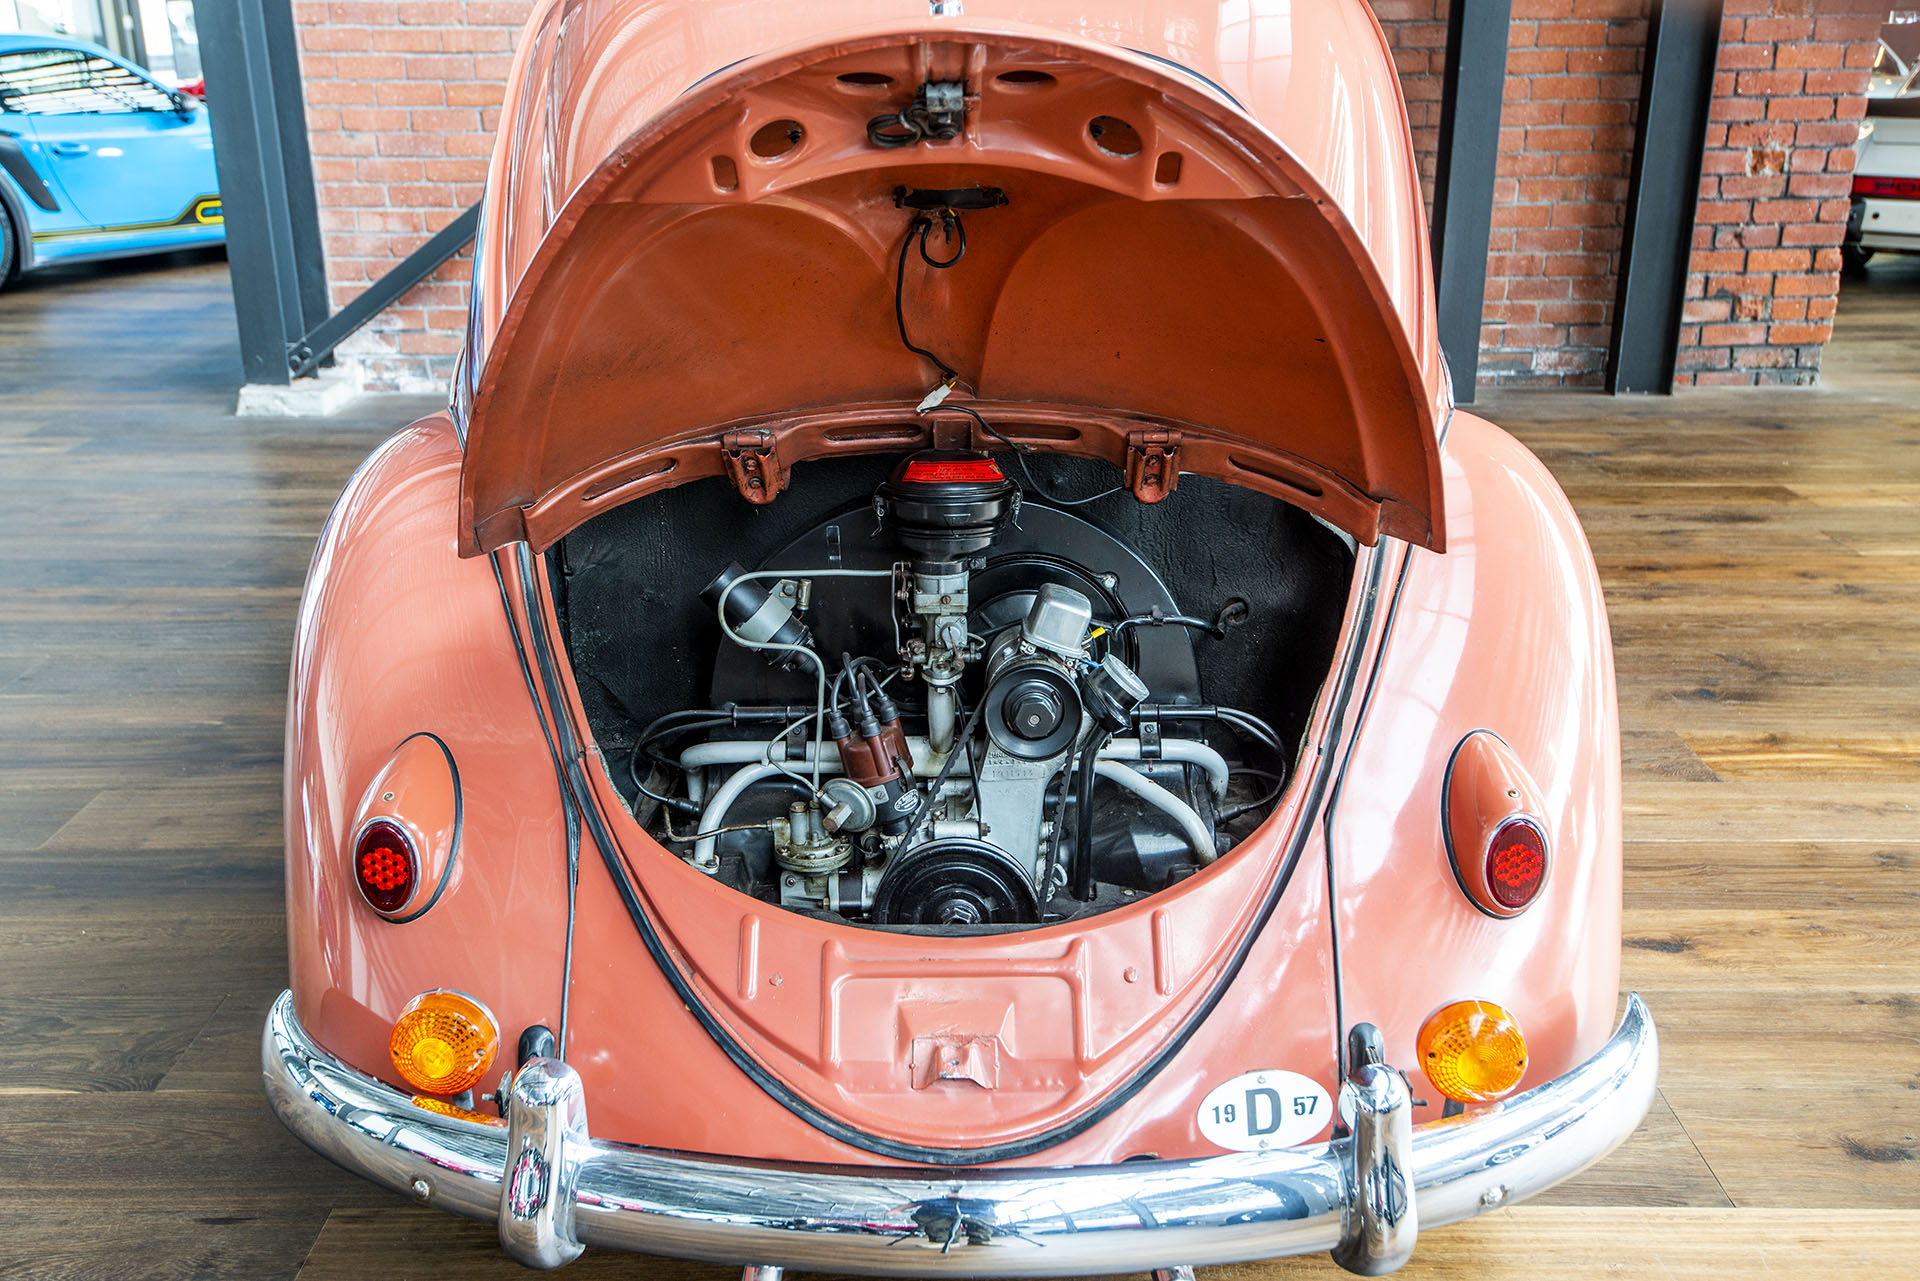 1957 Volkswagen Beetle Oval Window - Richmonds - Classic and Prestige Cars - Storage and Sales ...